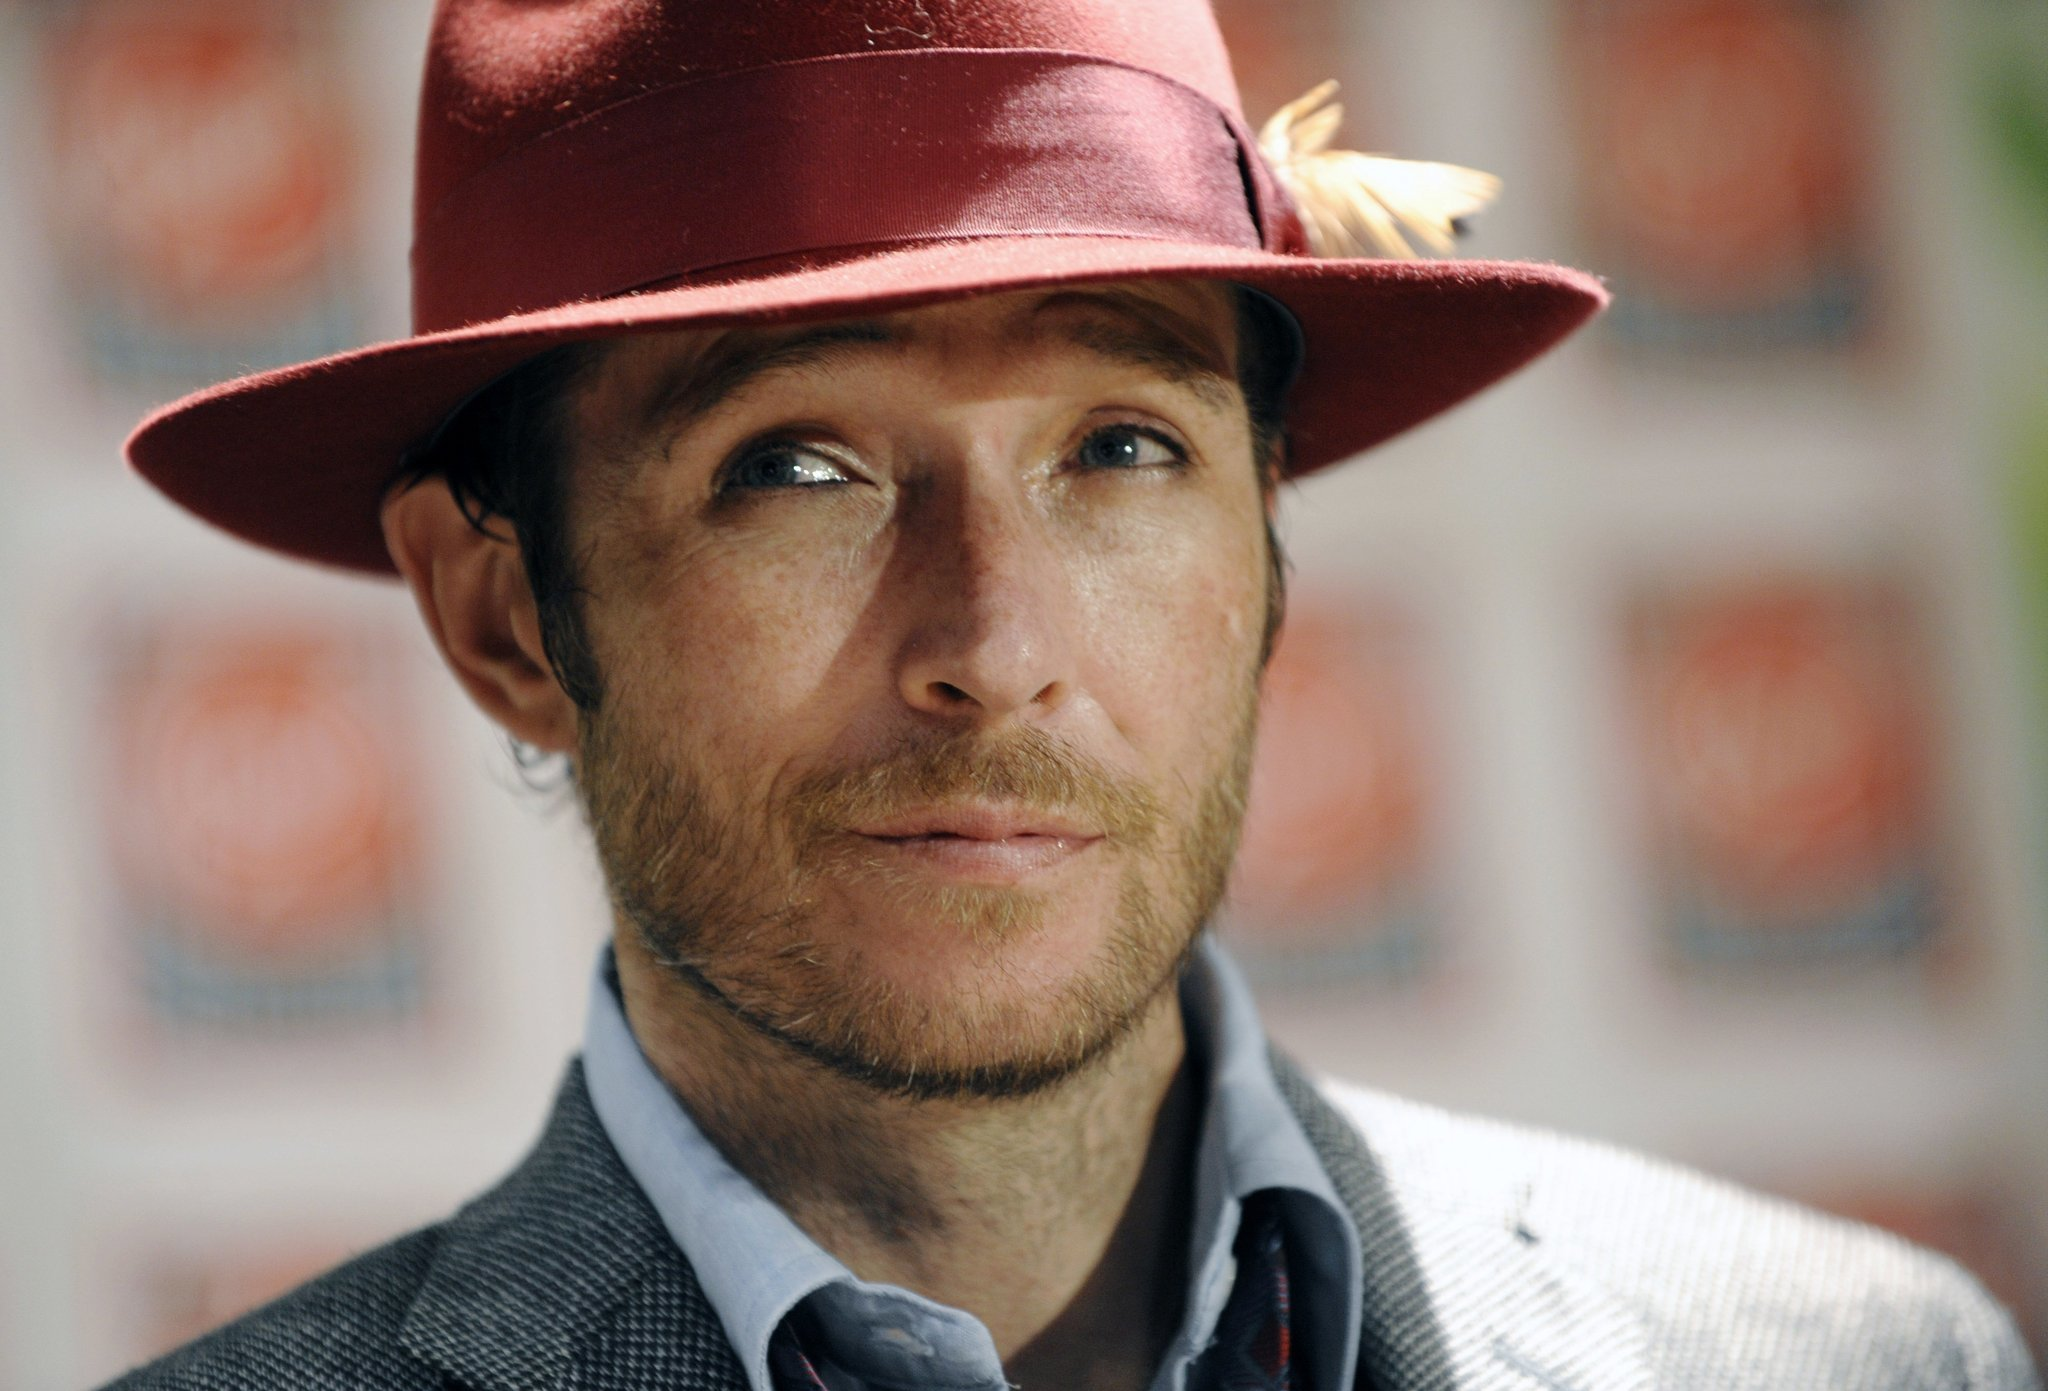 Cocaine found on scott weiland s bus former stone temple pilots